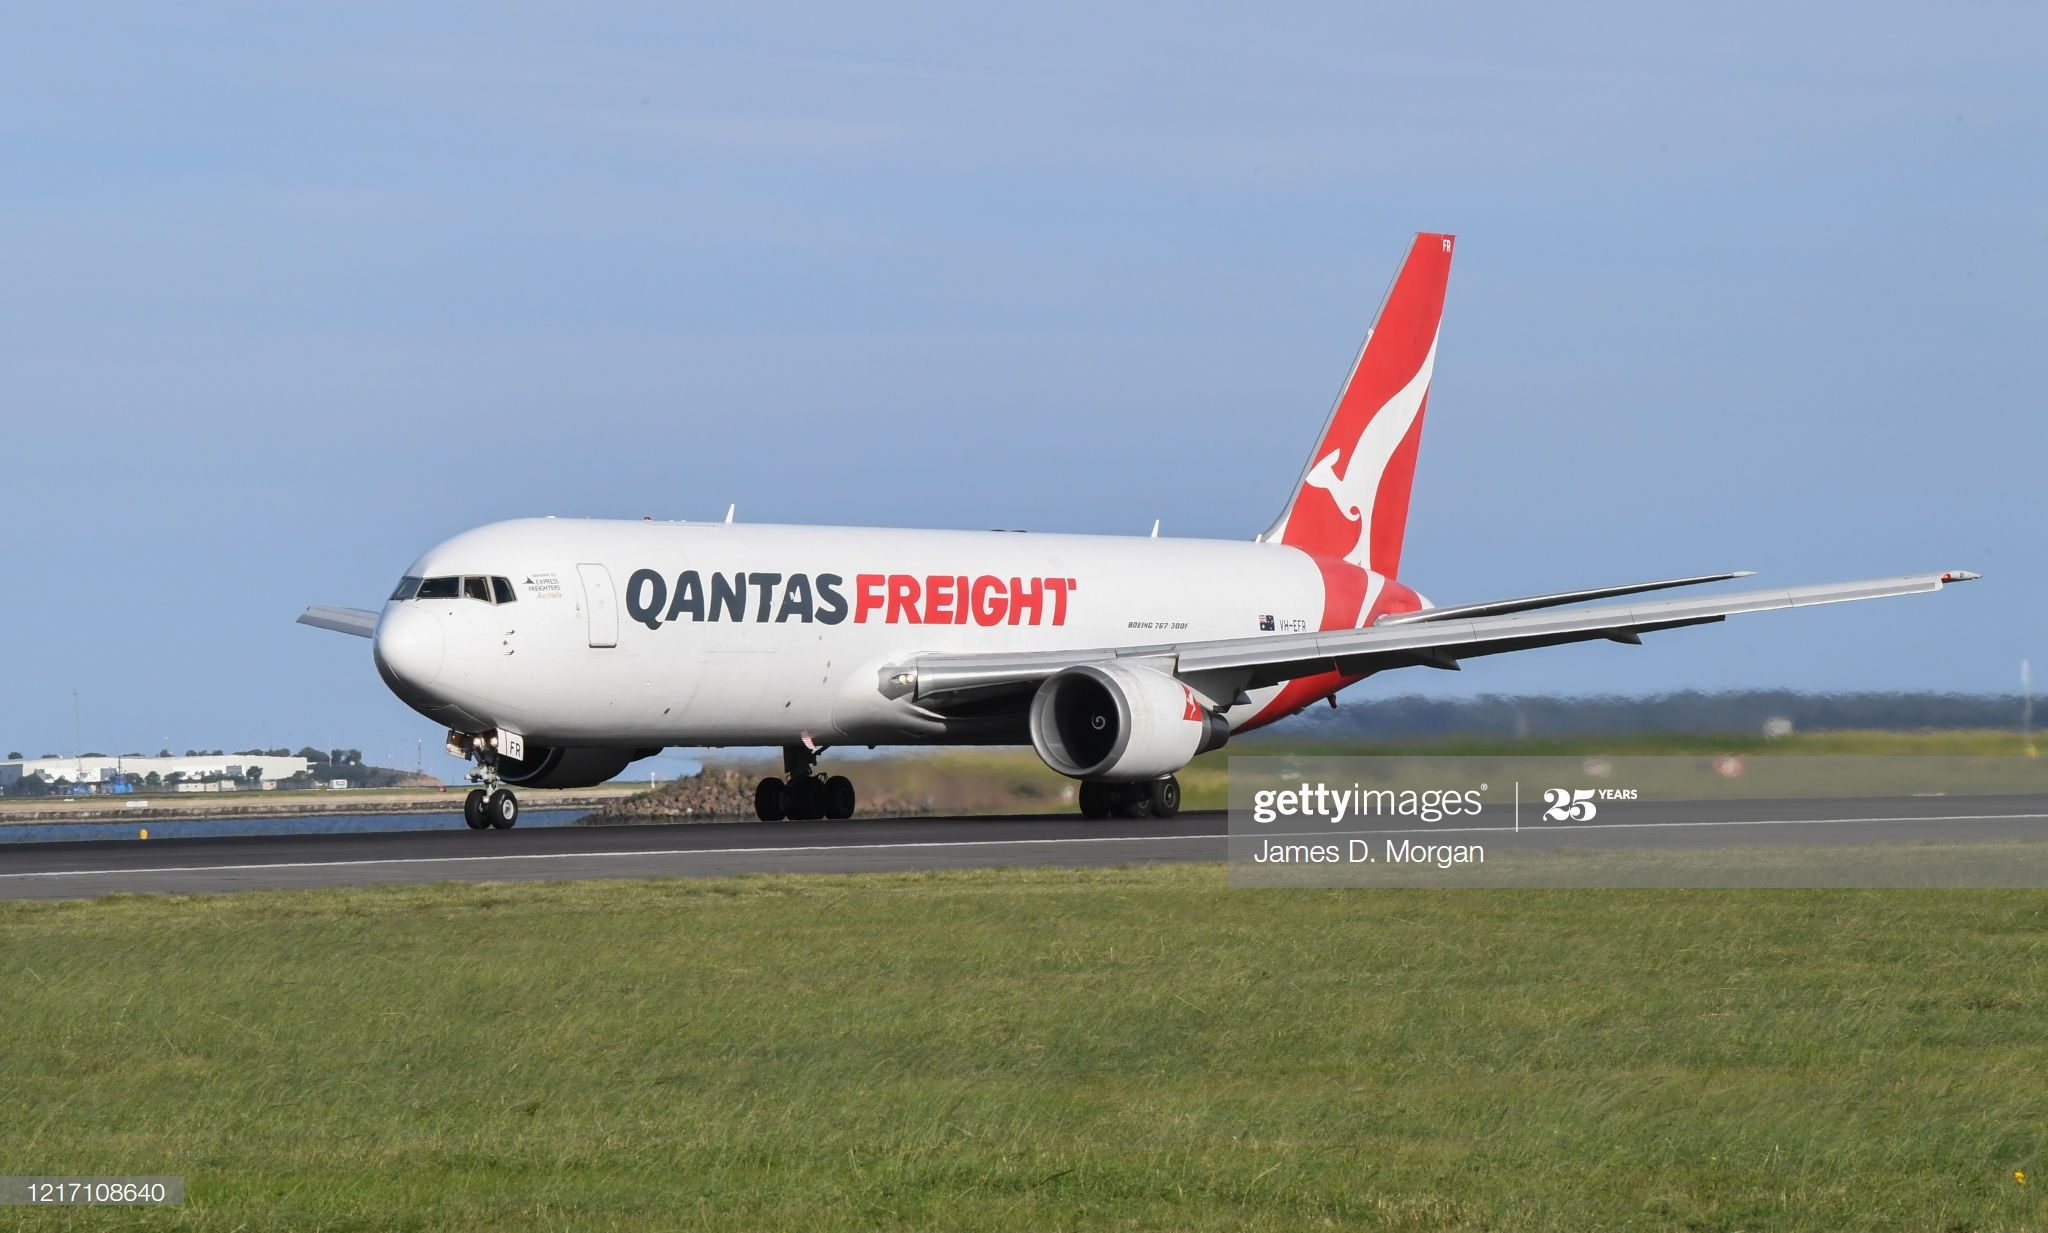 A Qantas Boeing 767300F aircraft, in decals detailing